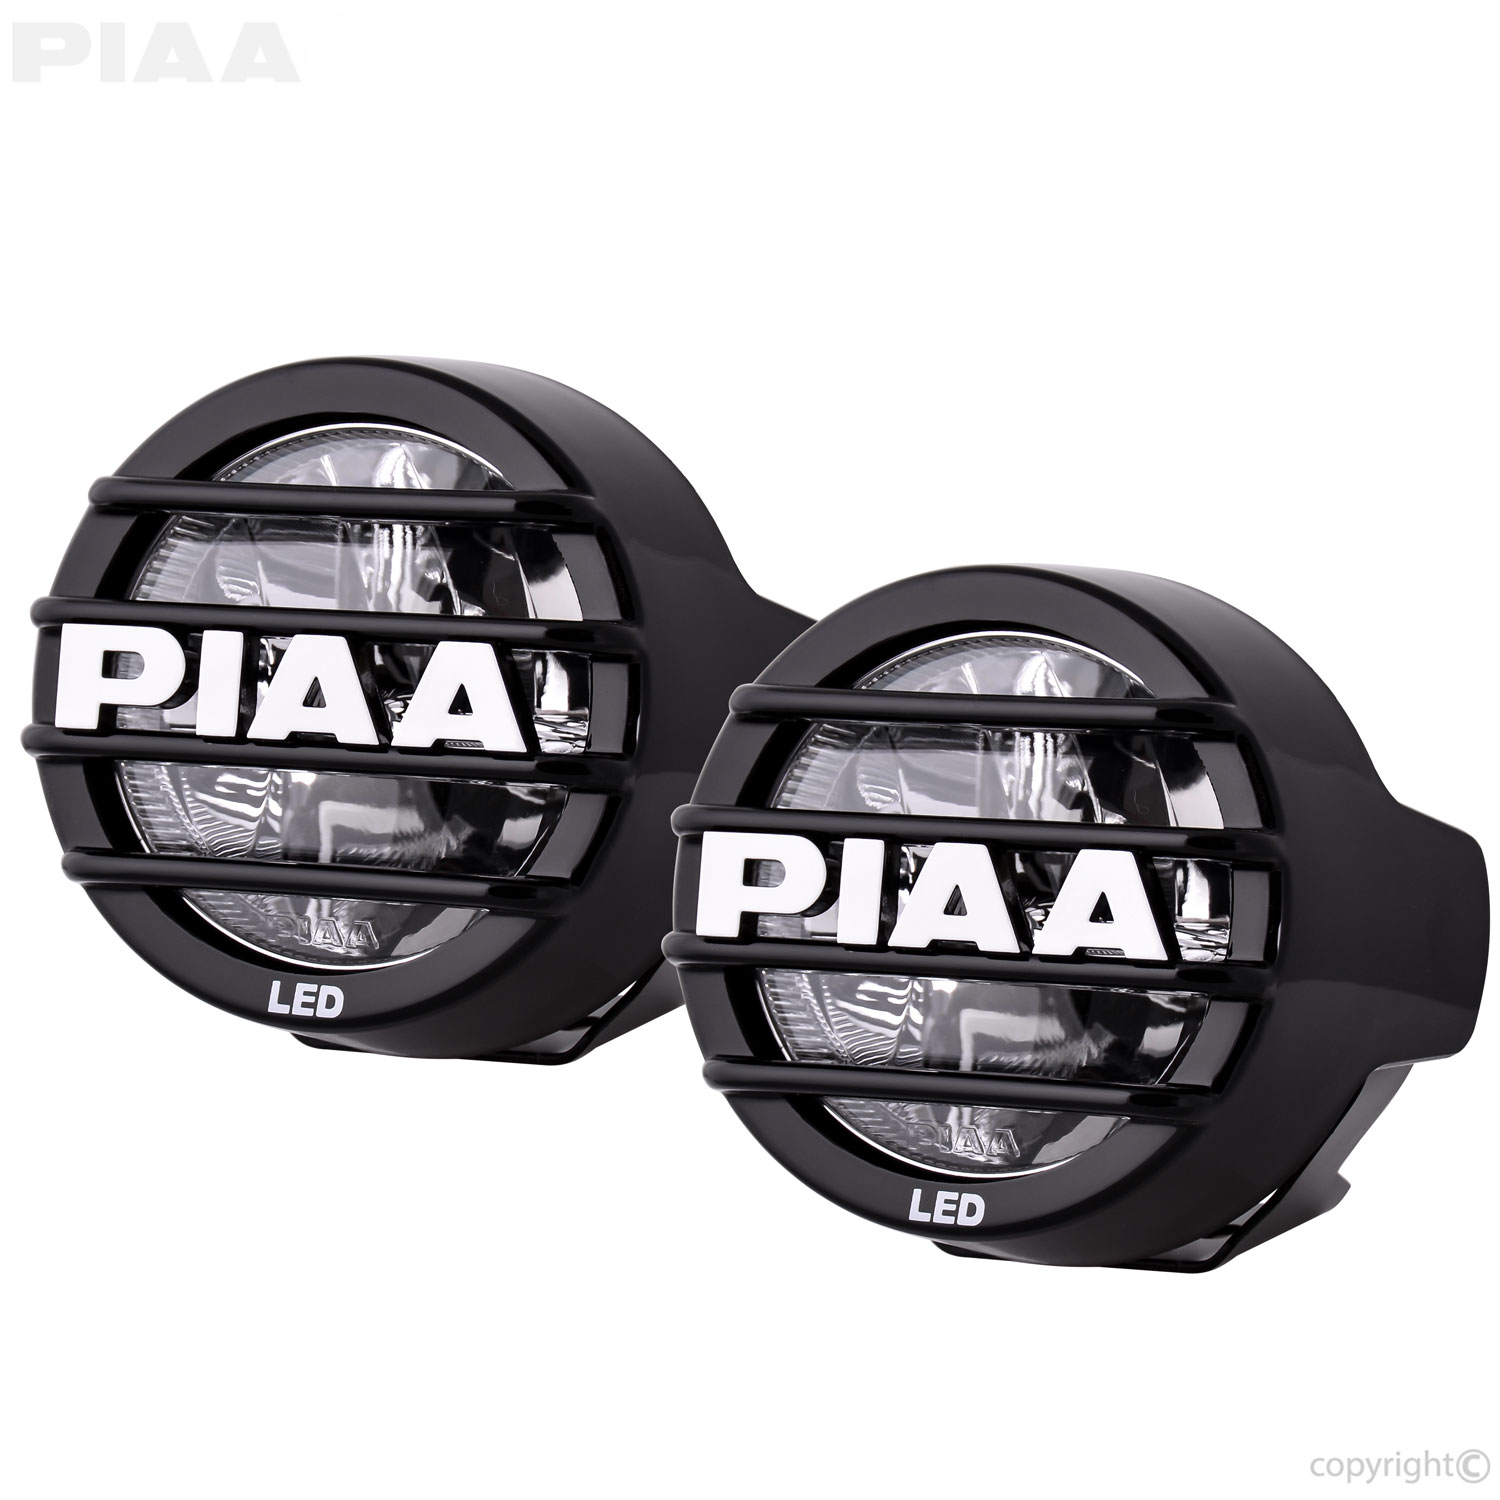 piaa lp530 led white driving beam kit Off-Road Light Wiring Harness